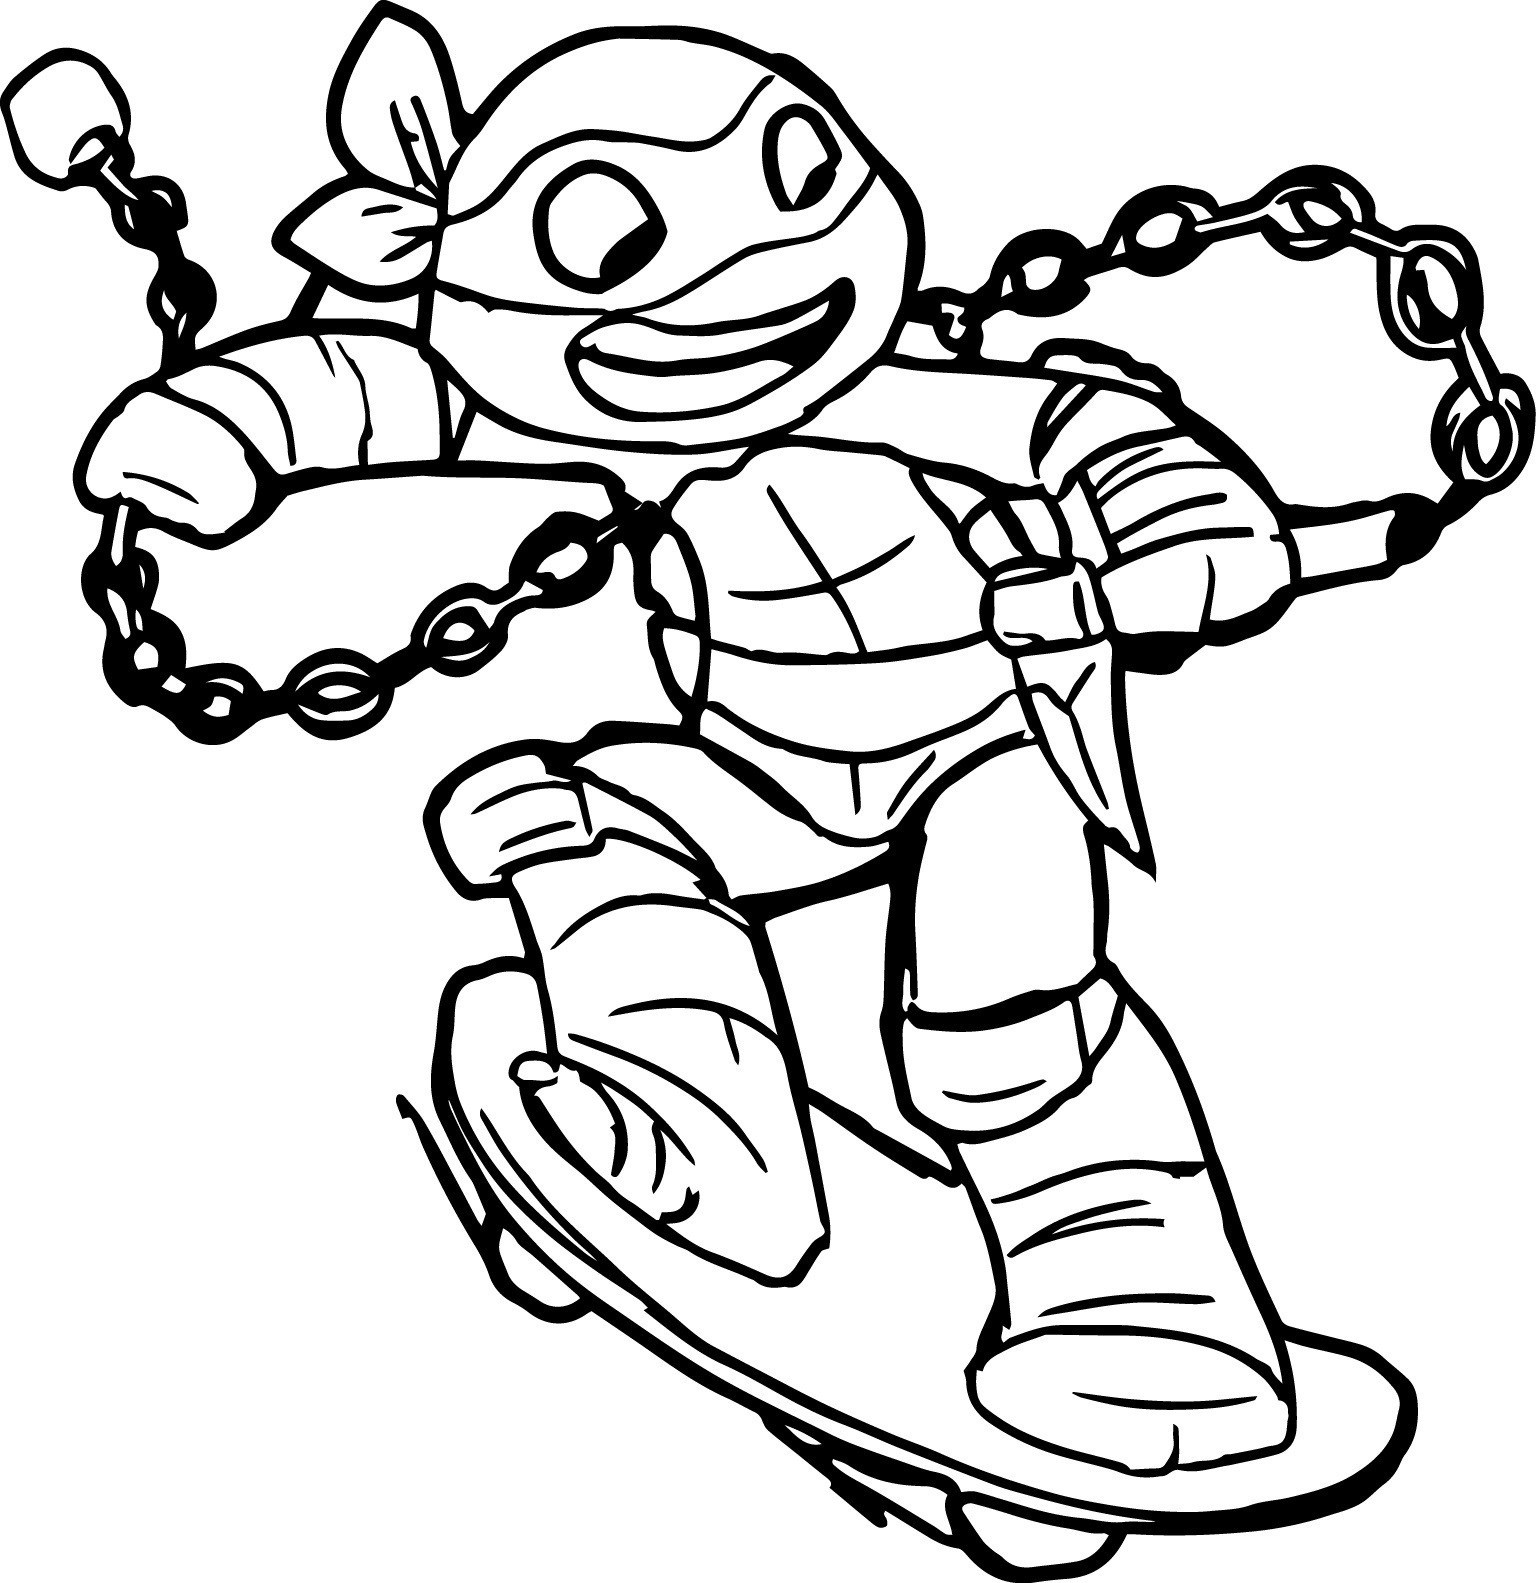 Ausmalbilder Ninja Turtles Inspirierend Teenage Mutant Ninja Turtles Faces Coloring Pages Unique 44 Neu Bild